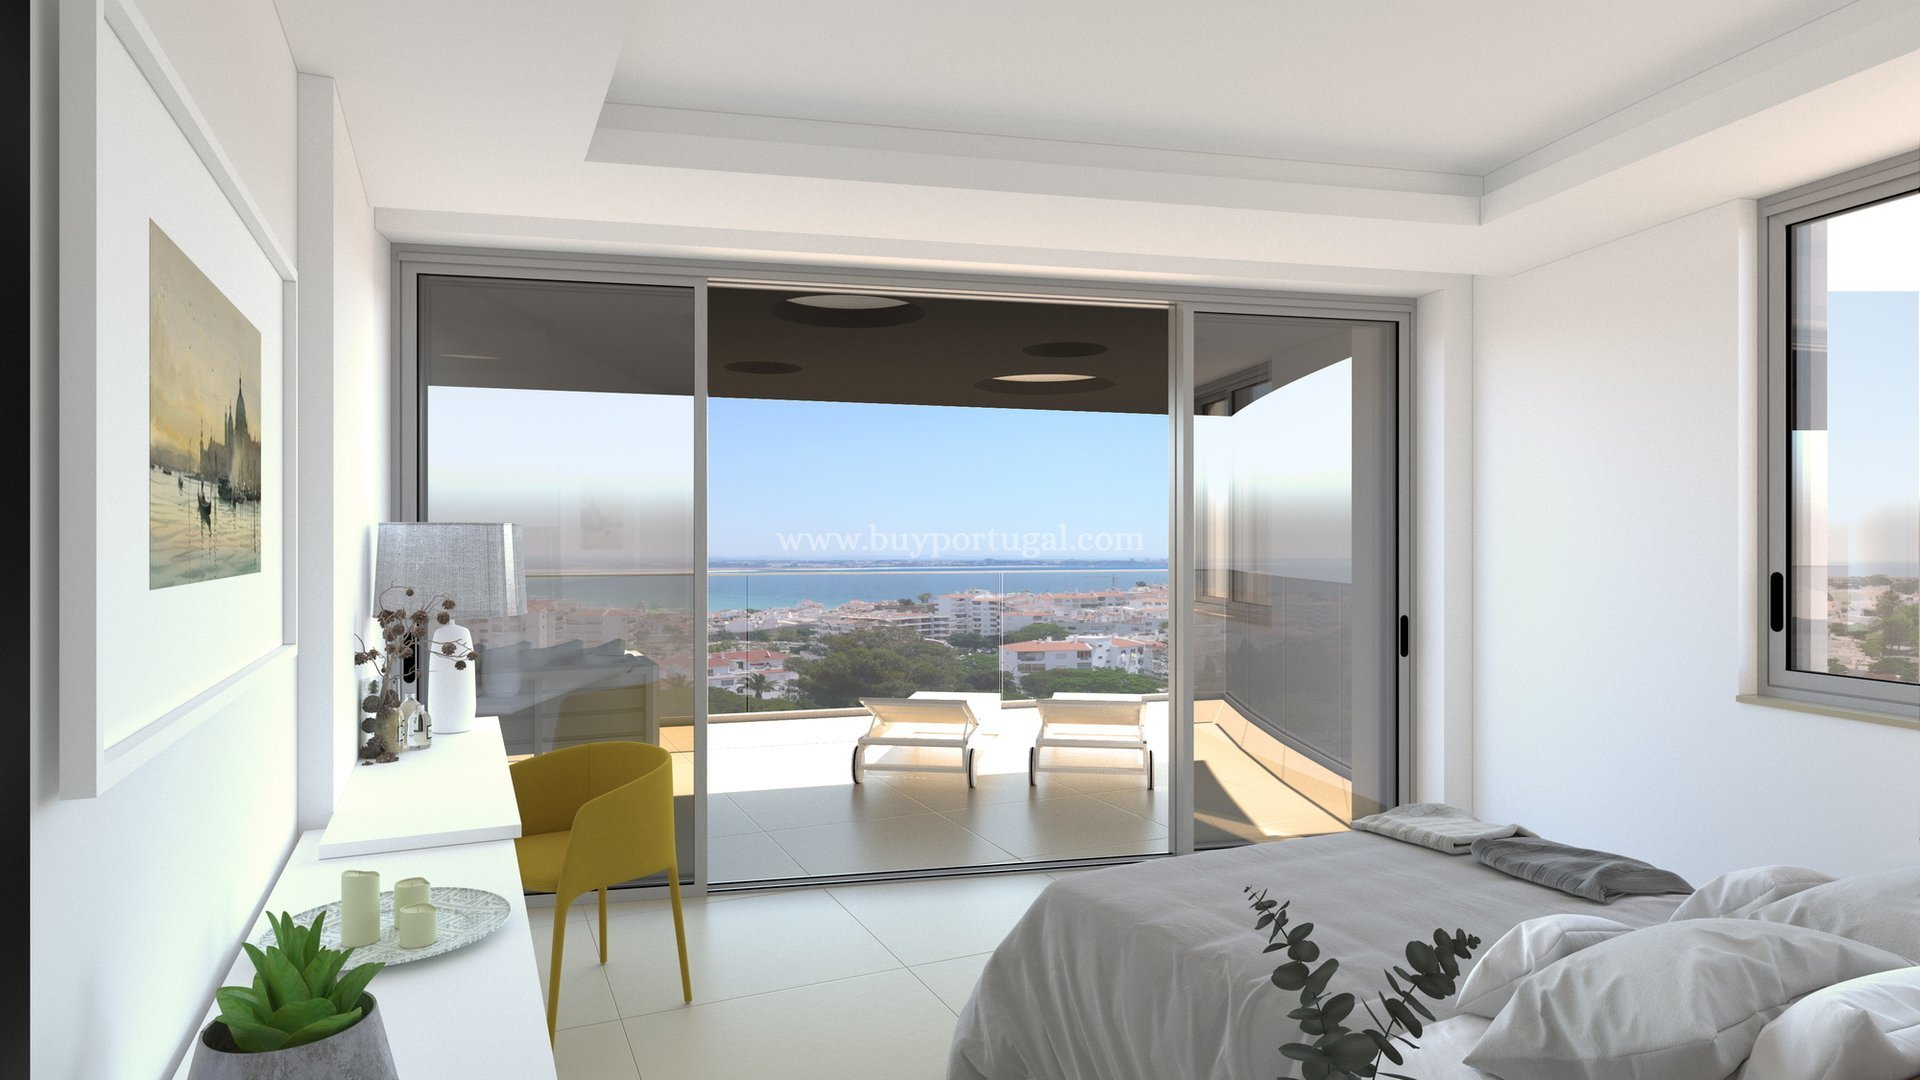 2 Bedroom Apartment Lagos, Western Algarve Ref: GA214B